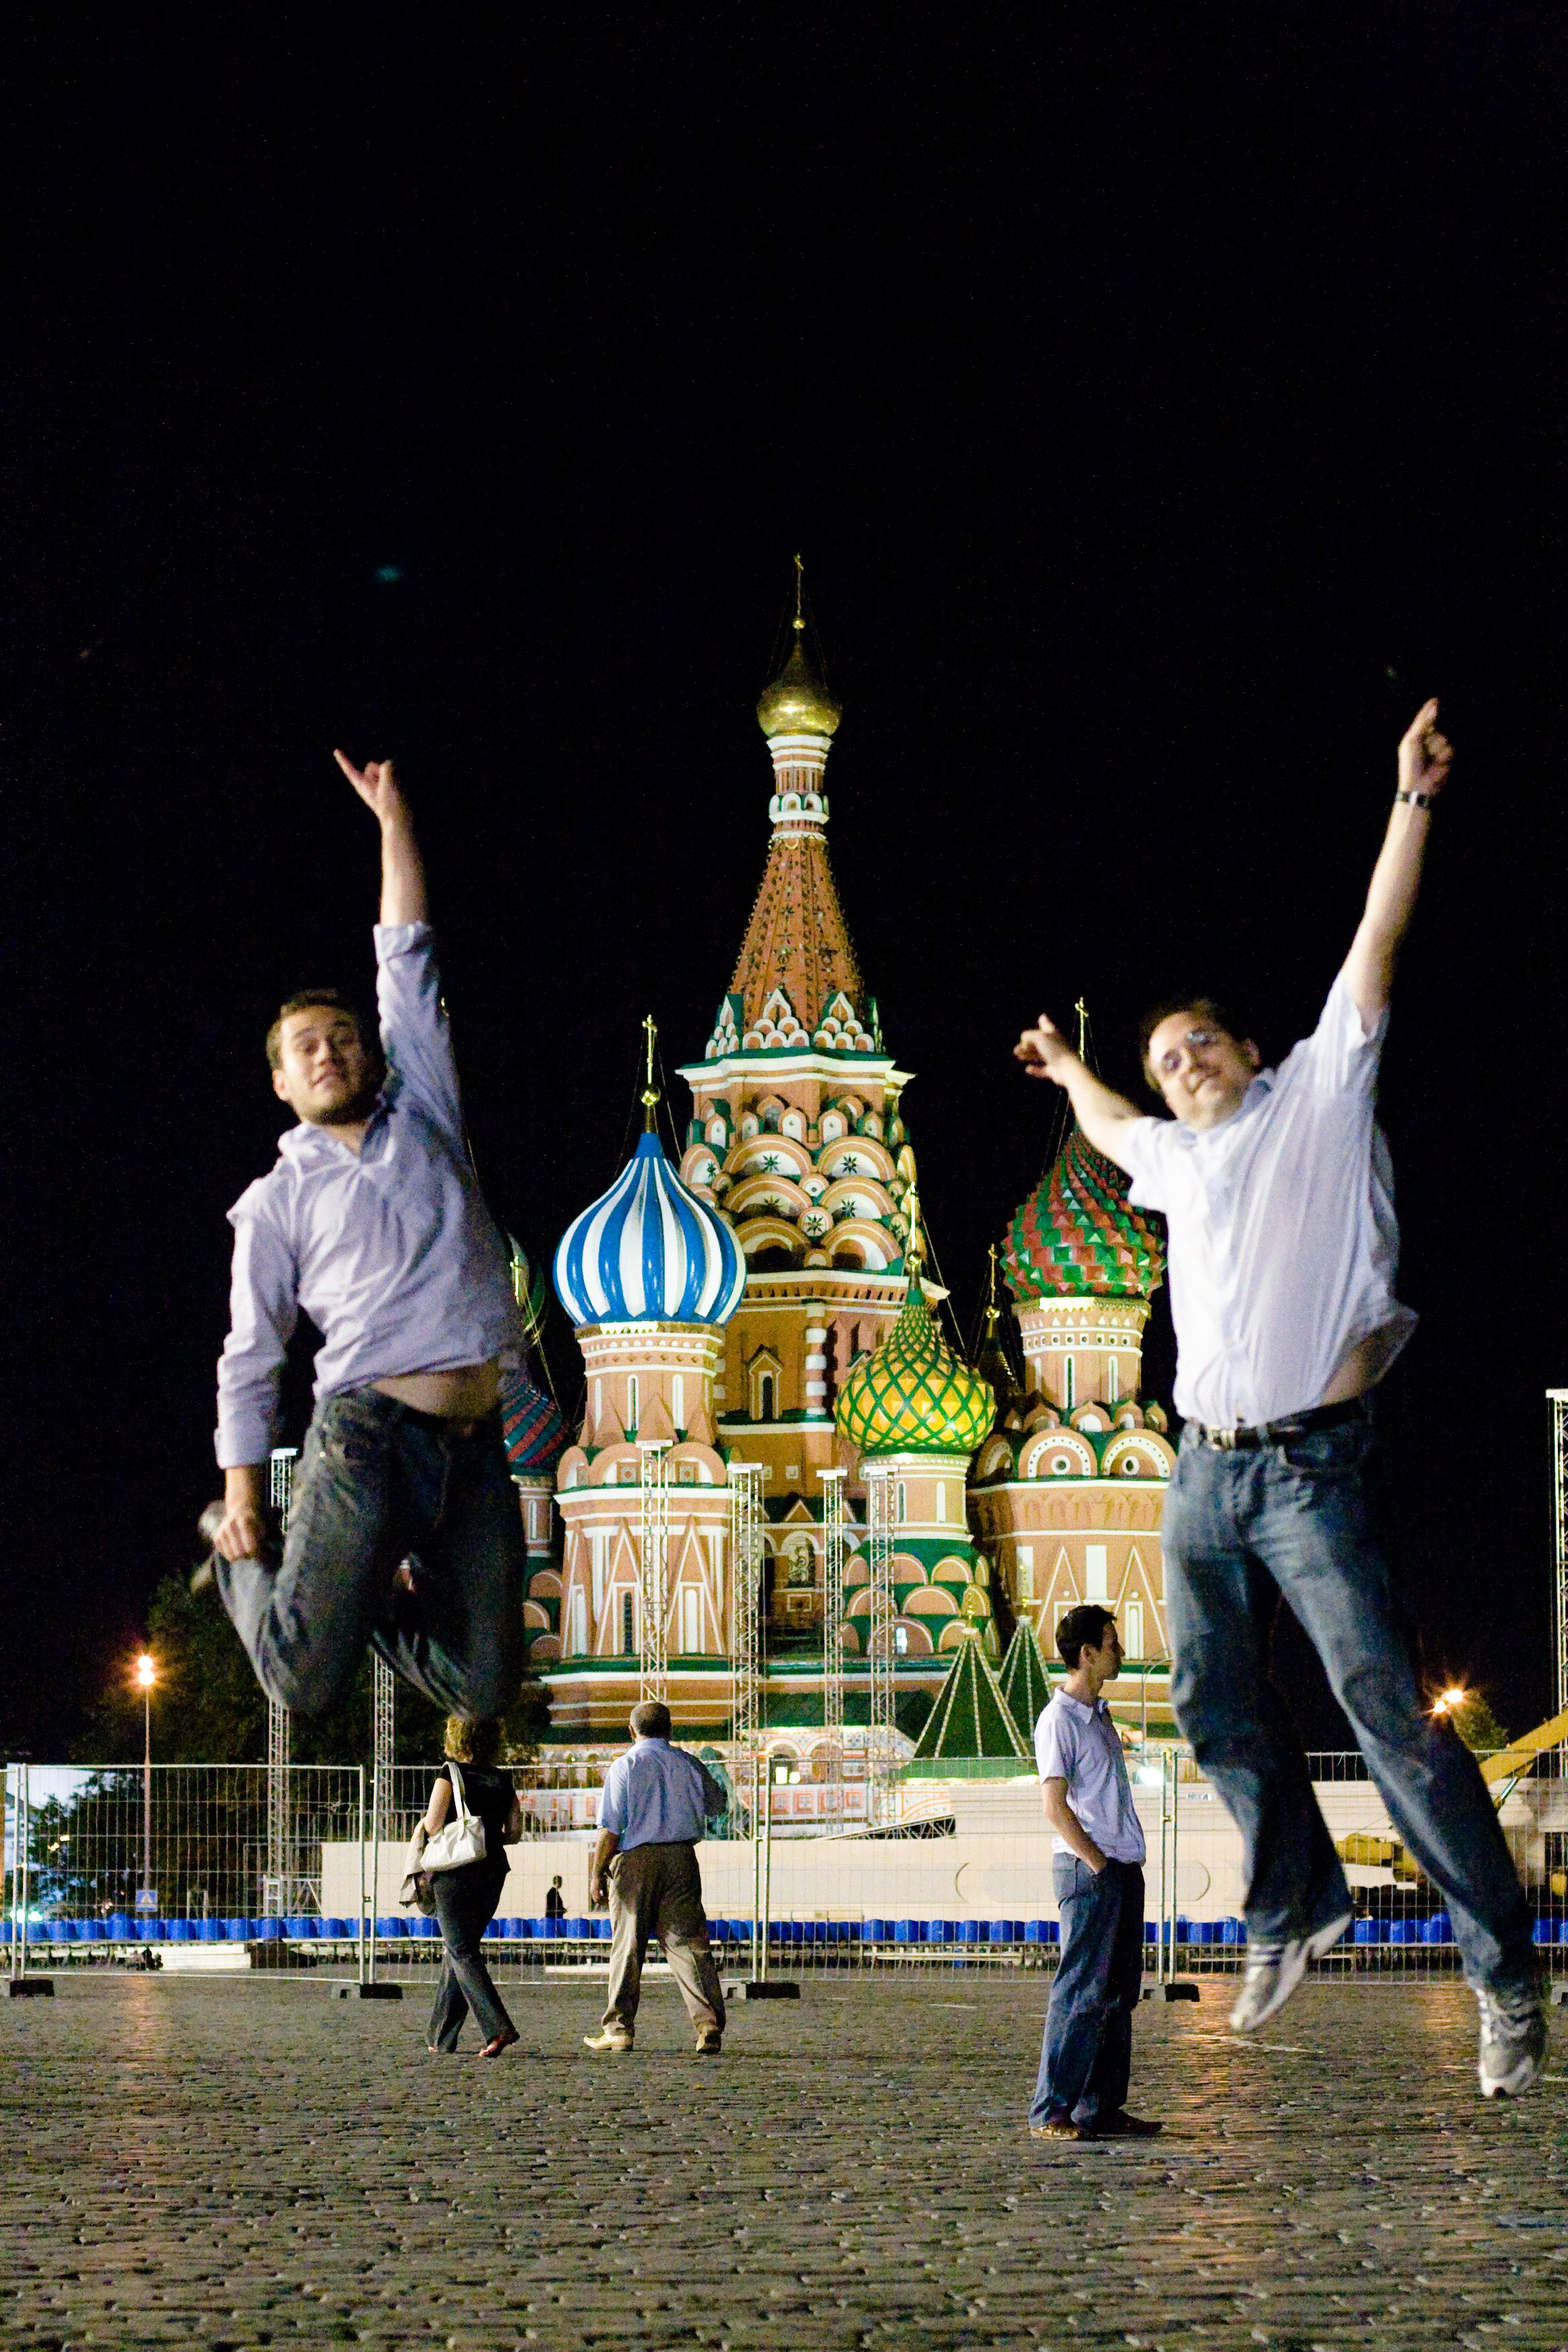 Red Square   Moscow City   Pinterest   Moscow and City